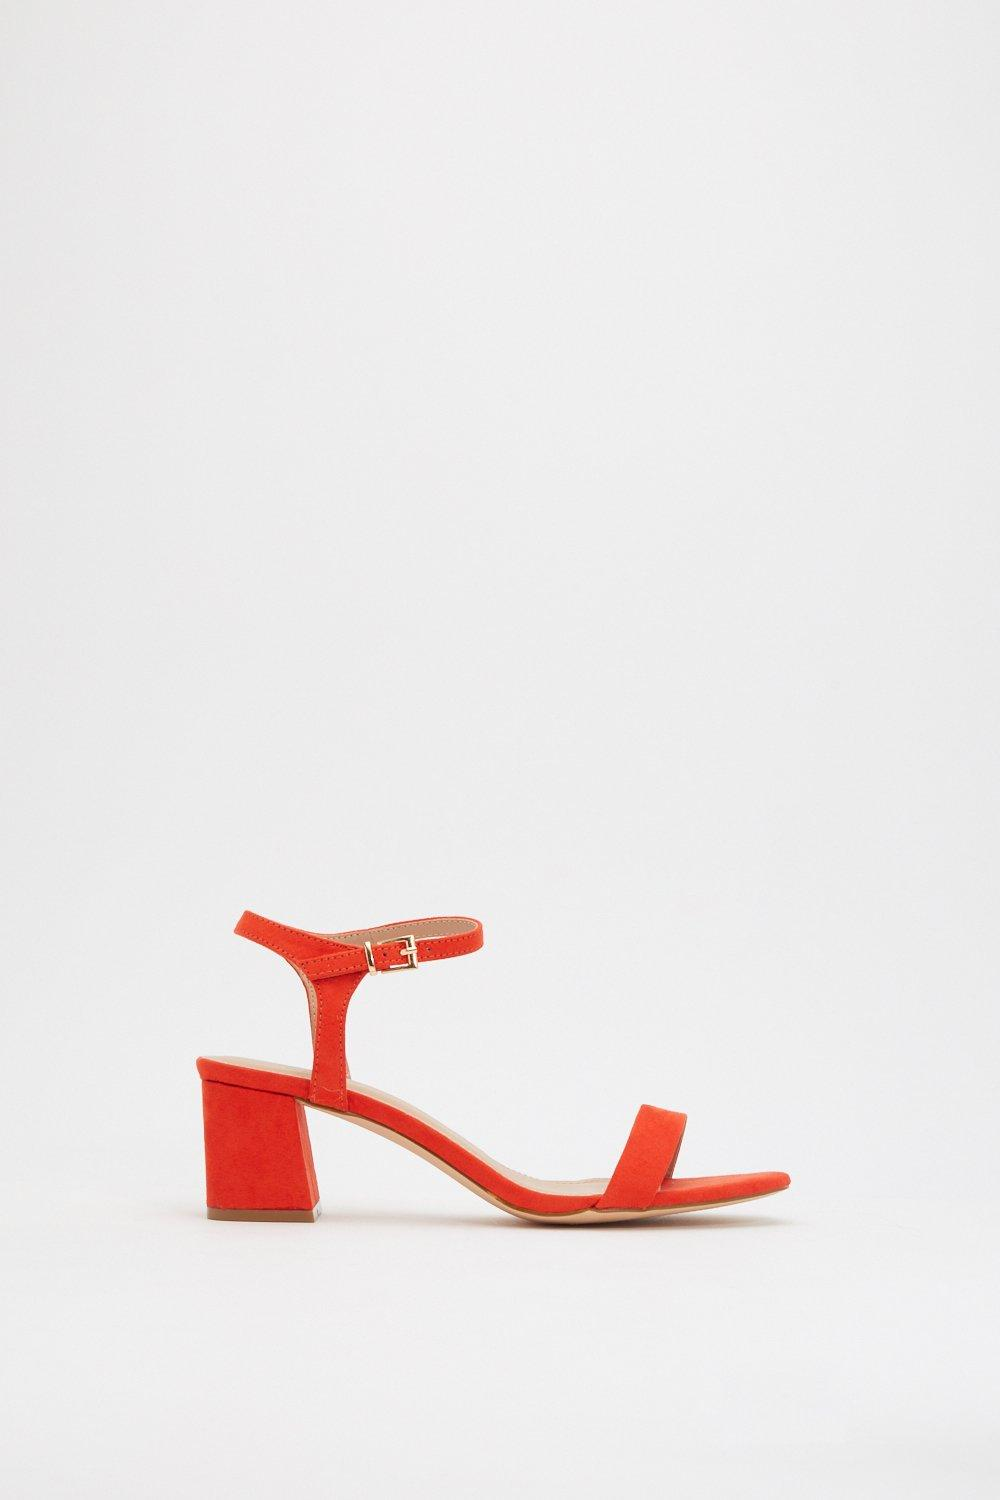 86499035fcde9 A Low It Flare Block Heel Sandals | Shop Clothes at Nasty Gal!